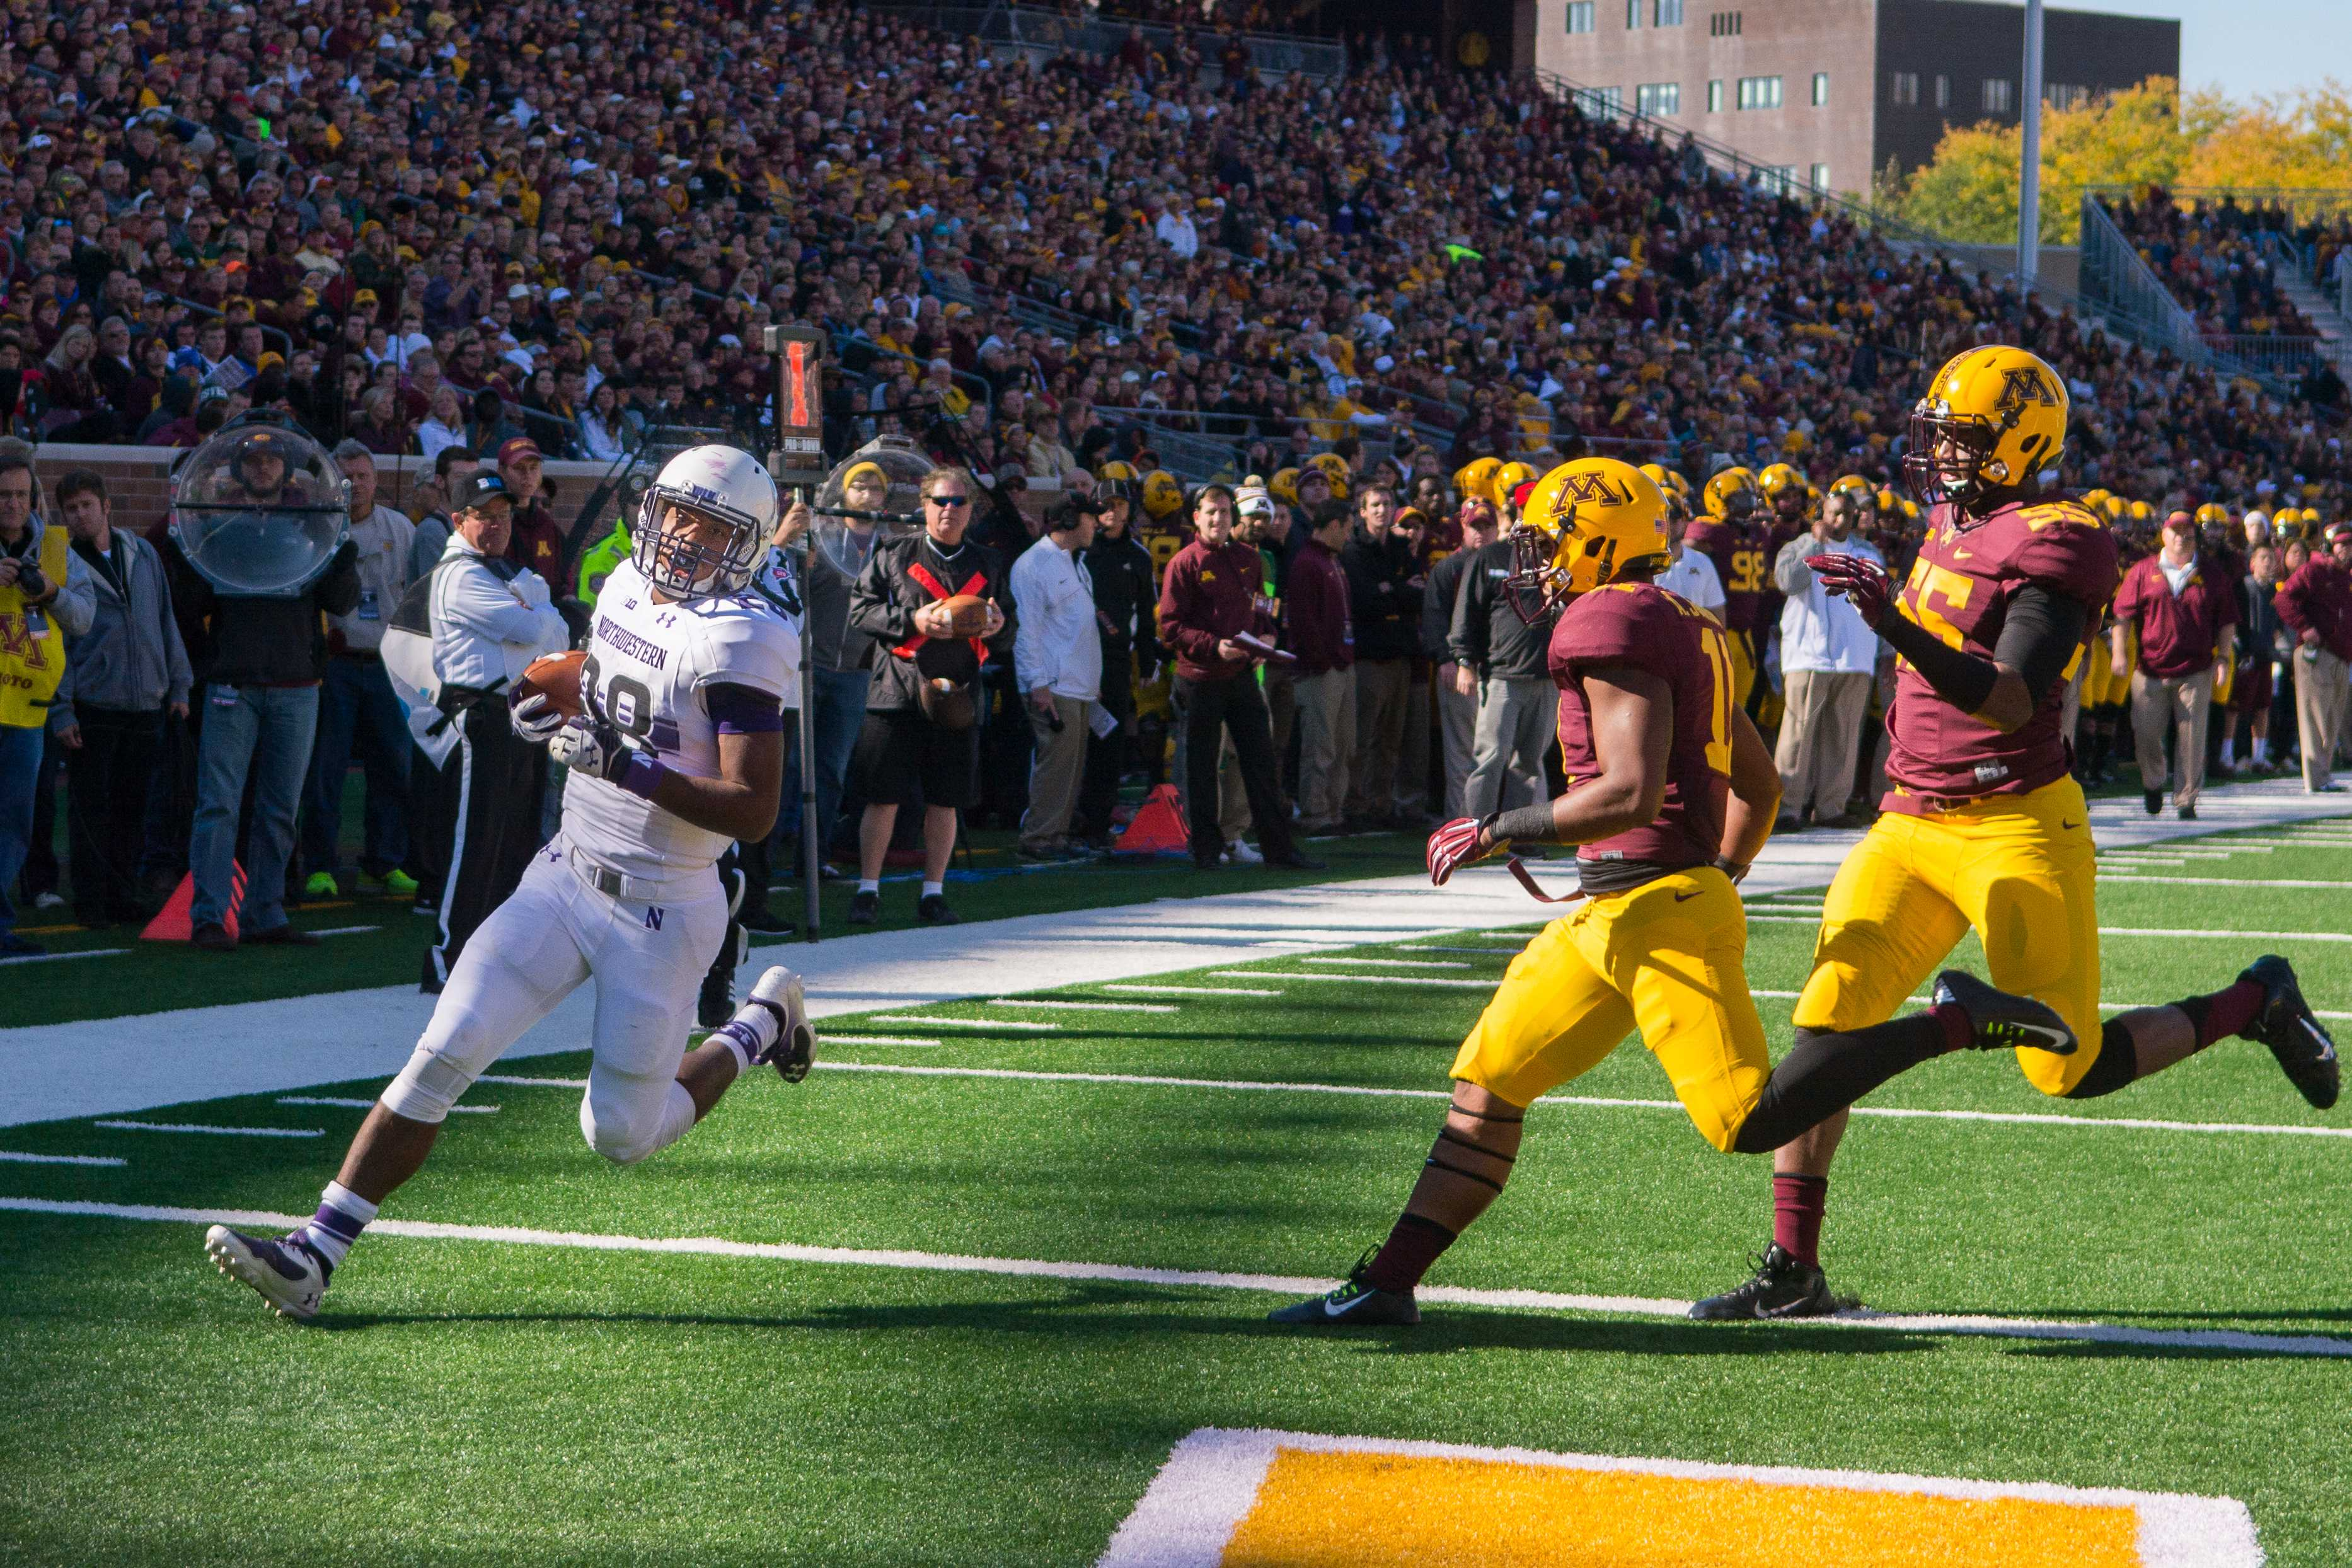 Freshman running back Justin Jackson glides into the end zone after an 11-yard catch-and-run for Northwestern's only touchdown of the first half. Jackson gained 67 yards on the ground during the first half, and senior quarterback Trevor Siemian completed 10 of his 14 pass attempts.